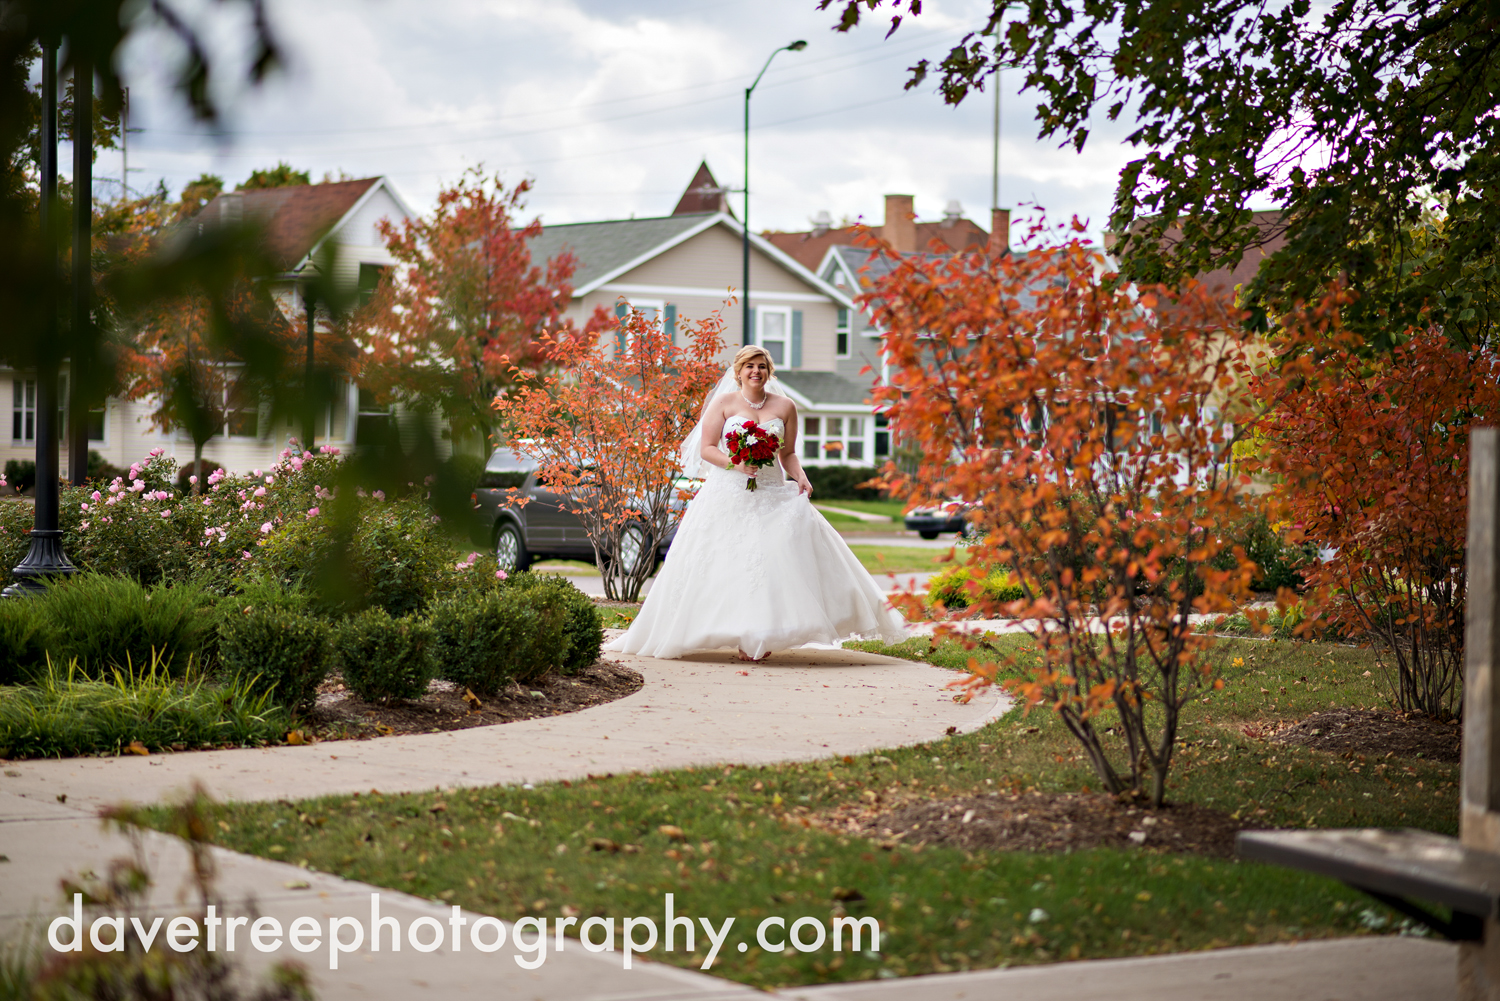 holland_wedding_photographer_69.jpg